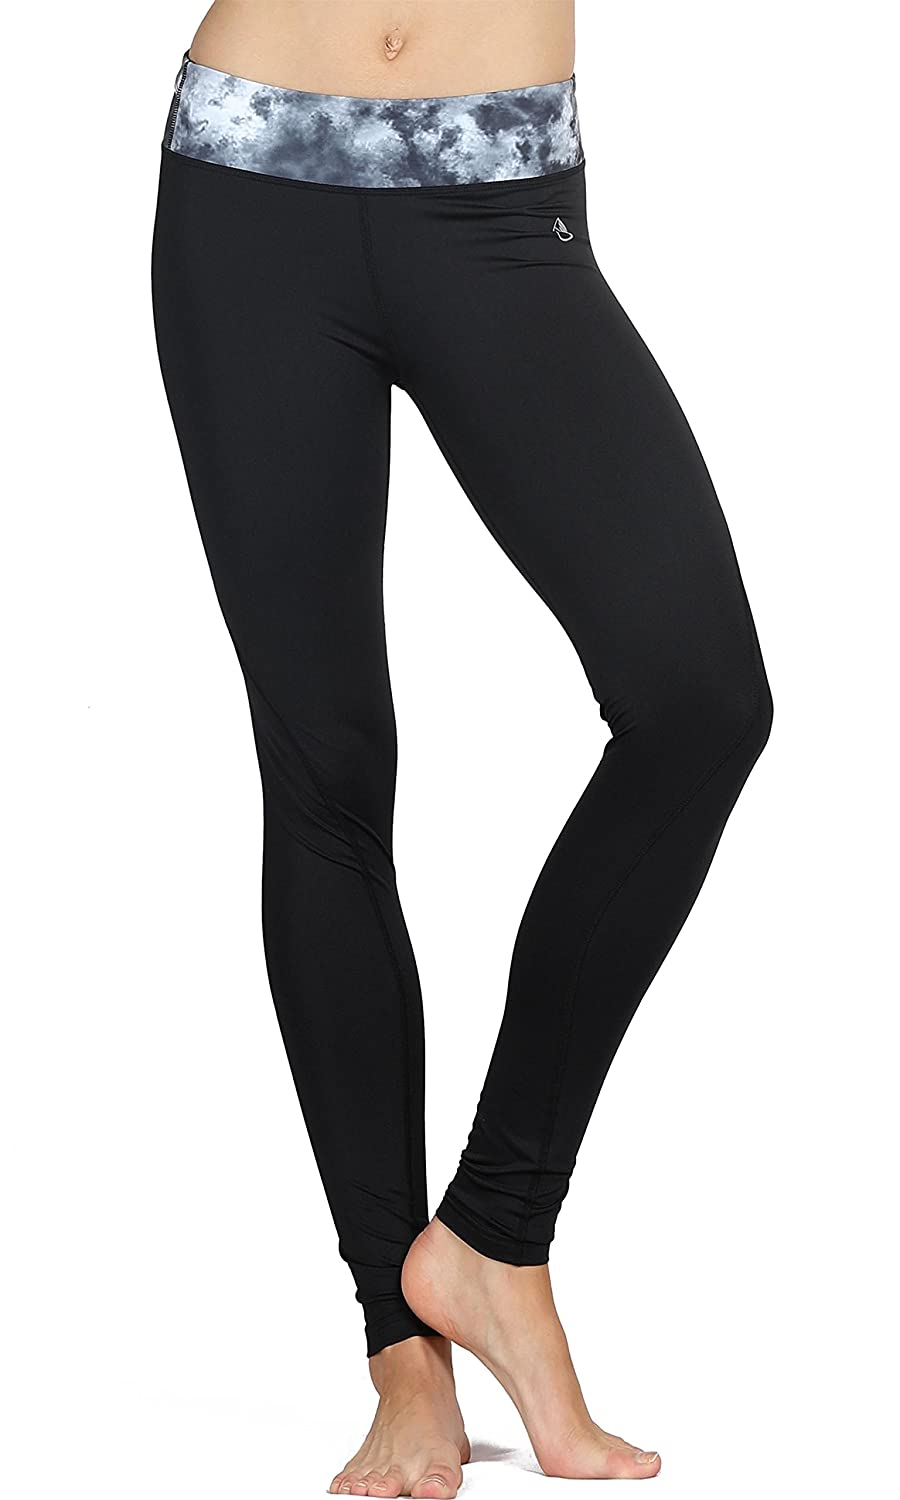 icyzone Activewear Women Running Pants Yoga Workout Leggings Slim Fitted Tights